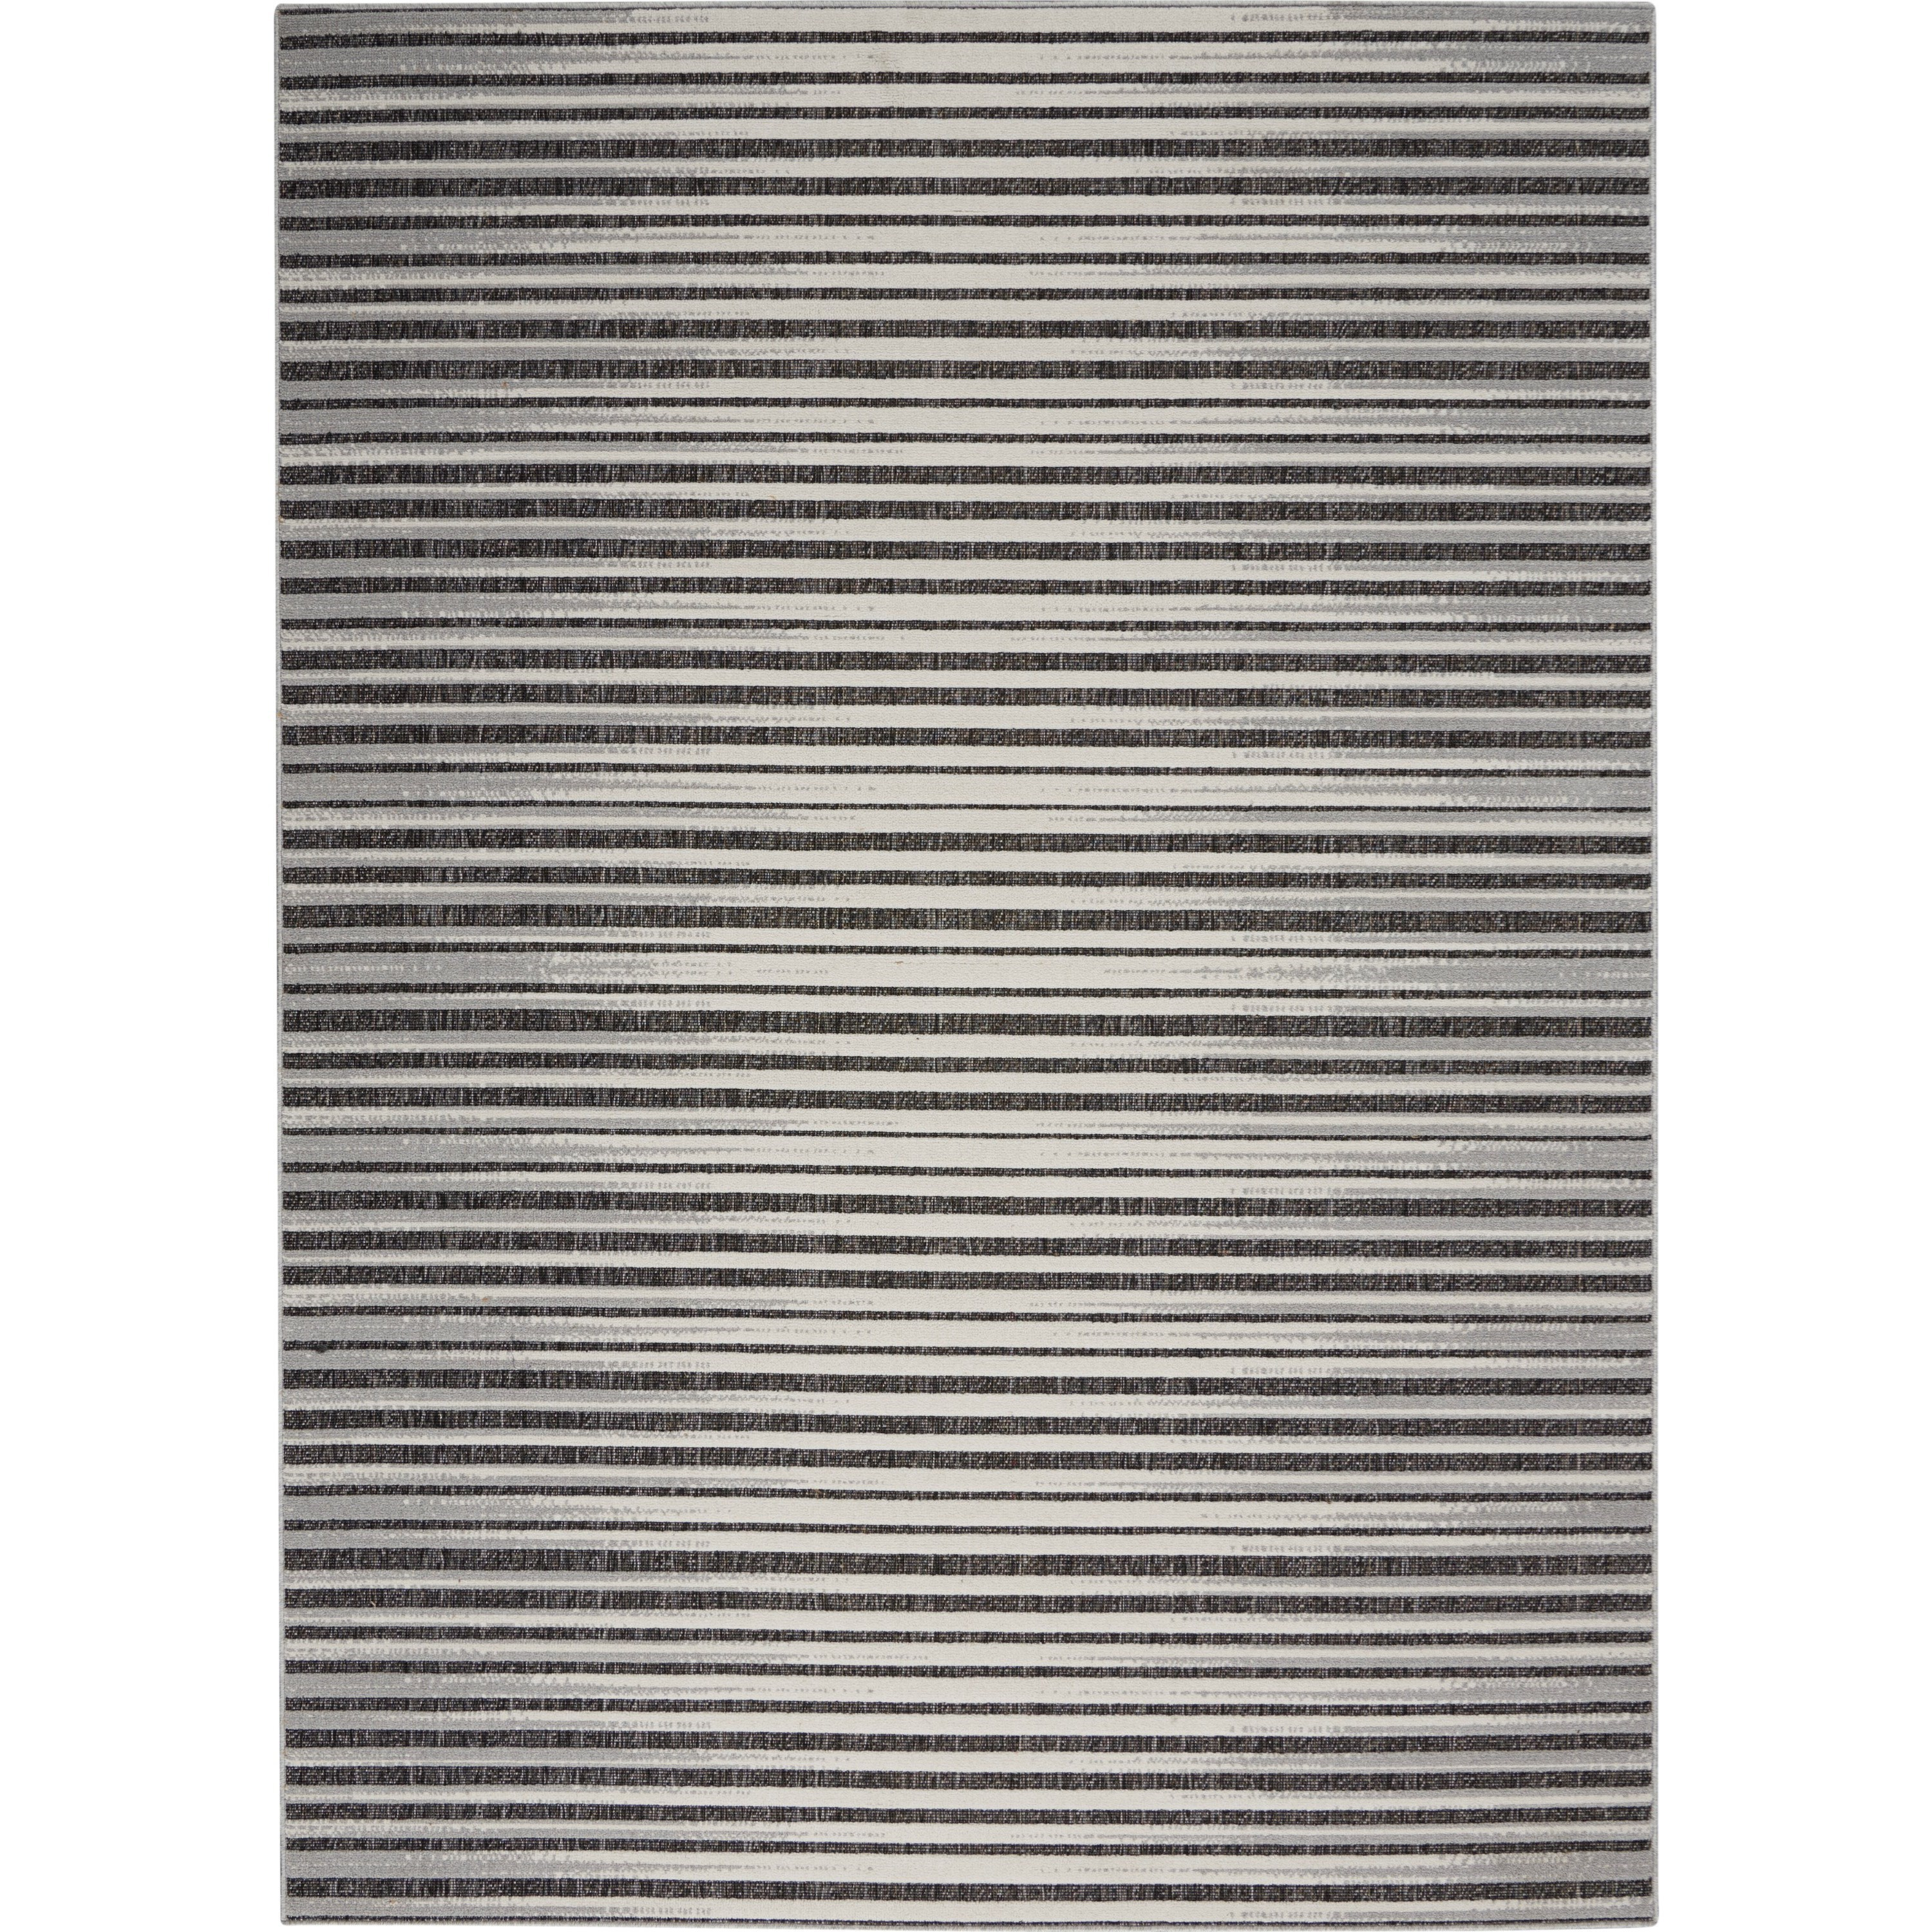 Key Largo 2020 5' x 7' Rug by Nourison at Home Collections Furniture